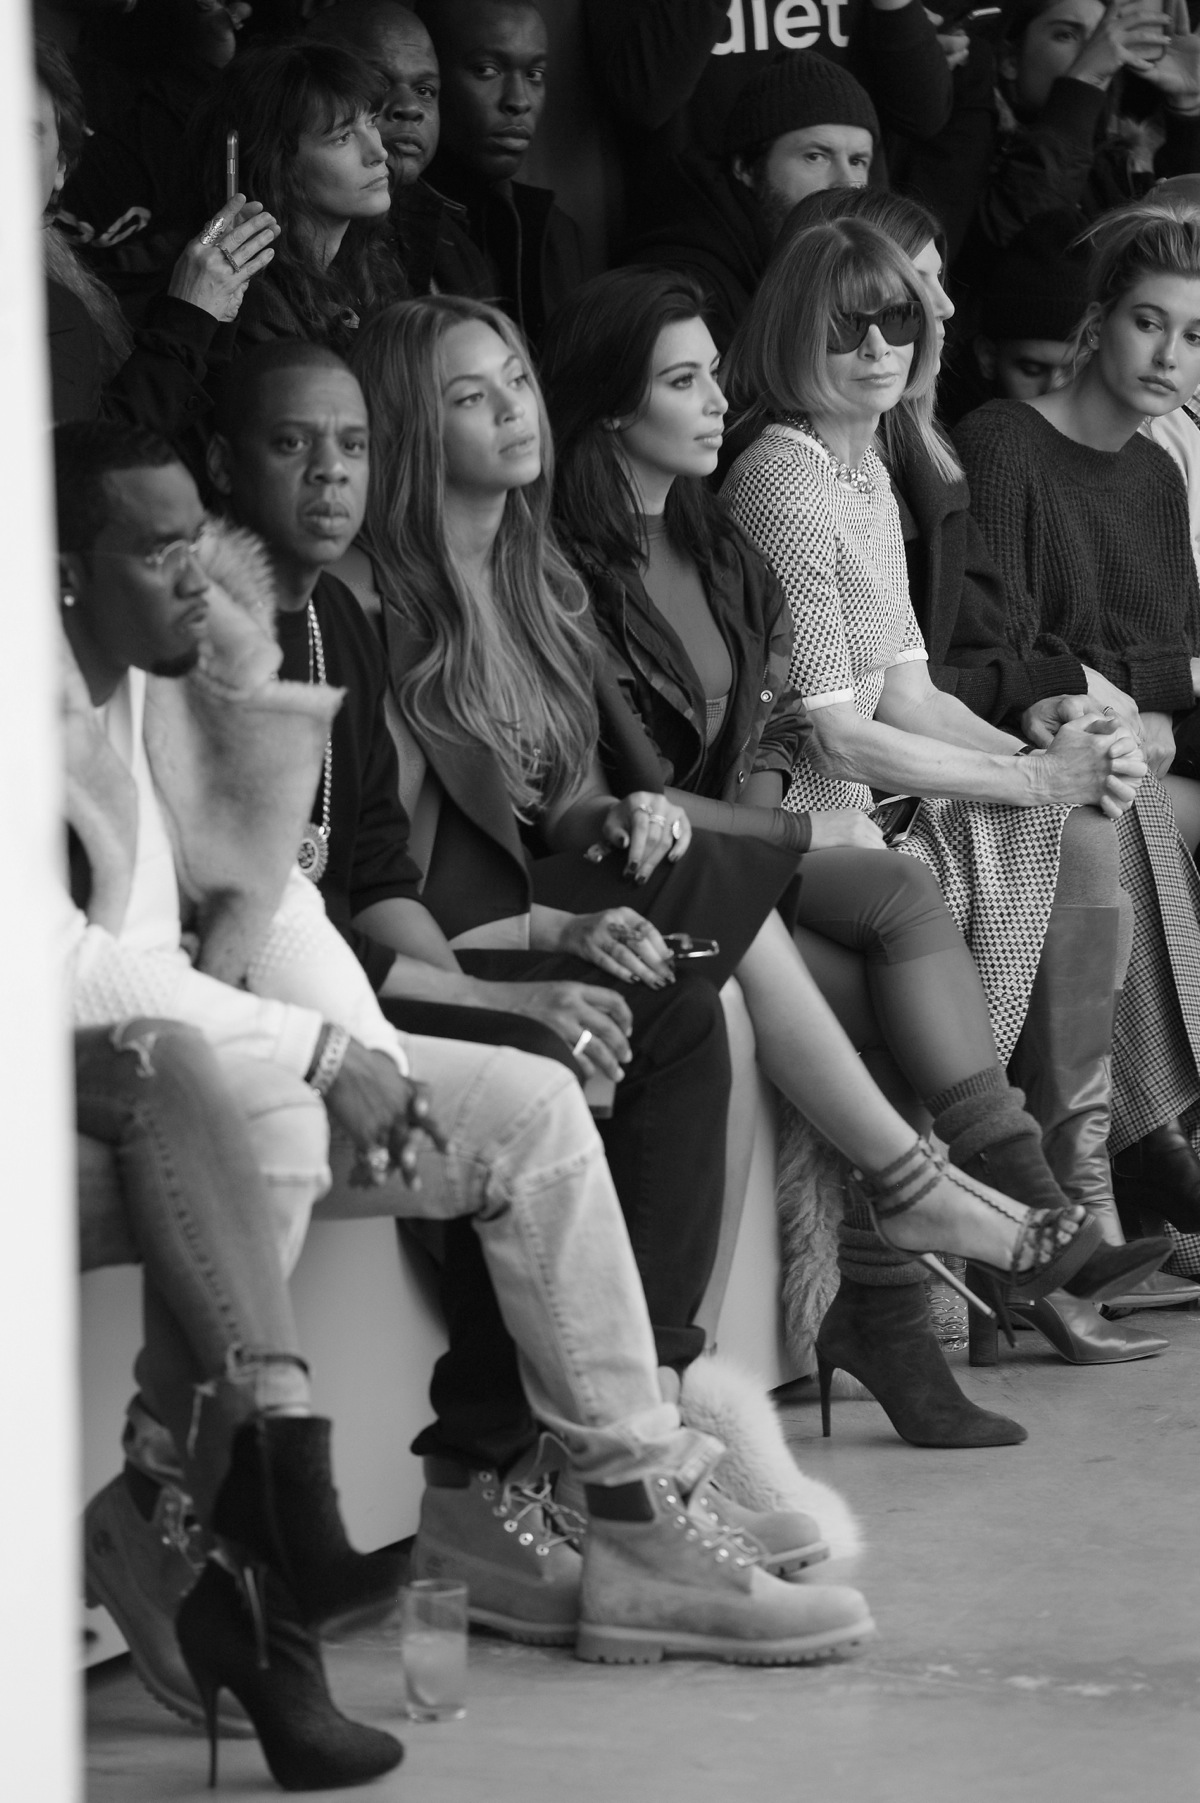 efc270b0c7d9a adidas Originals x Kanye West YEEZY SEASON 1 - Runway  Sean Diddy Combs  Jay-Z Beyonce Kim Kardashian and Anna Wintour attend the adidas Originals  ...